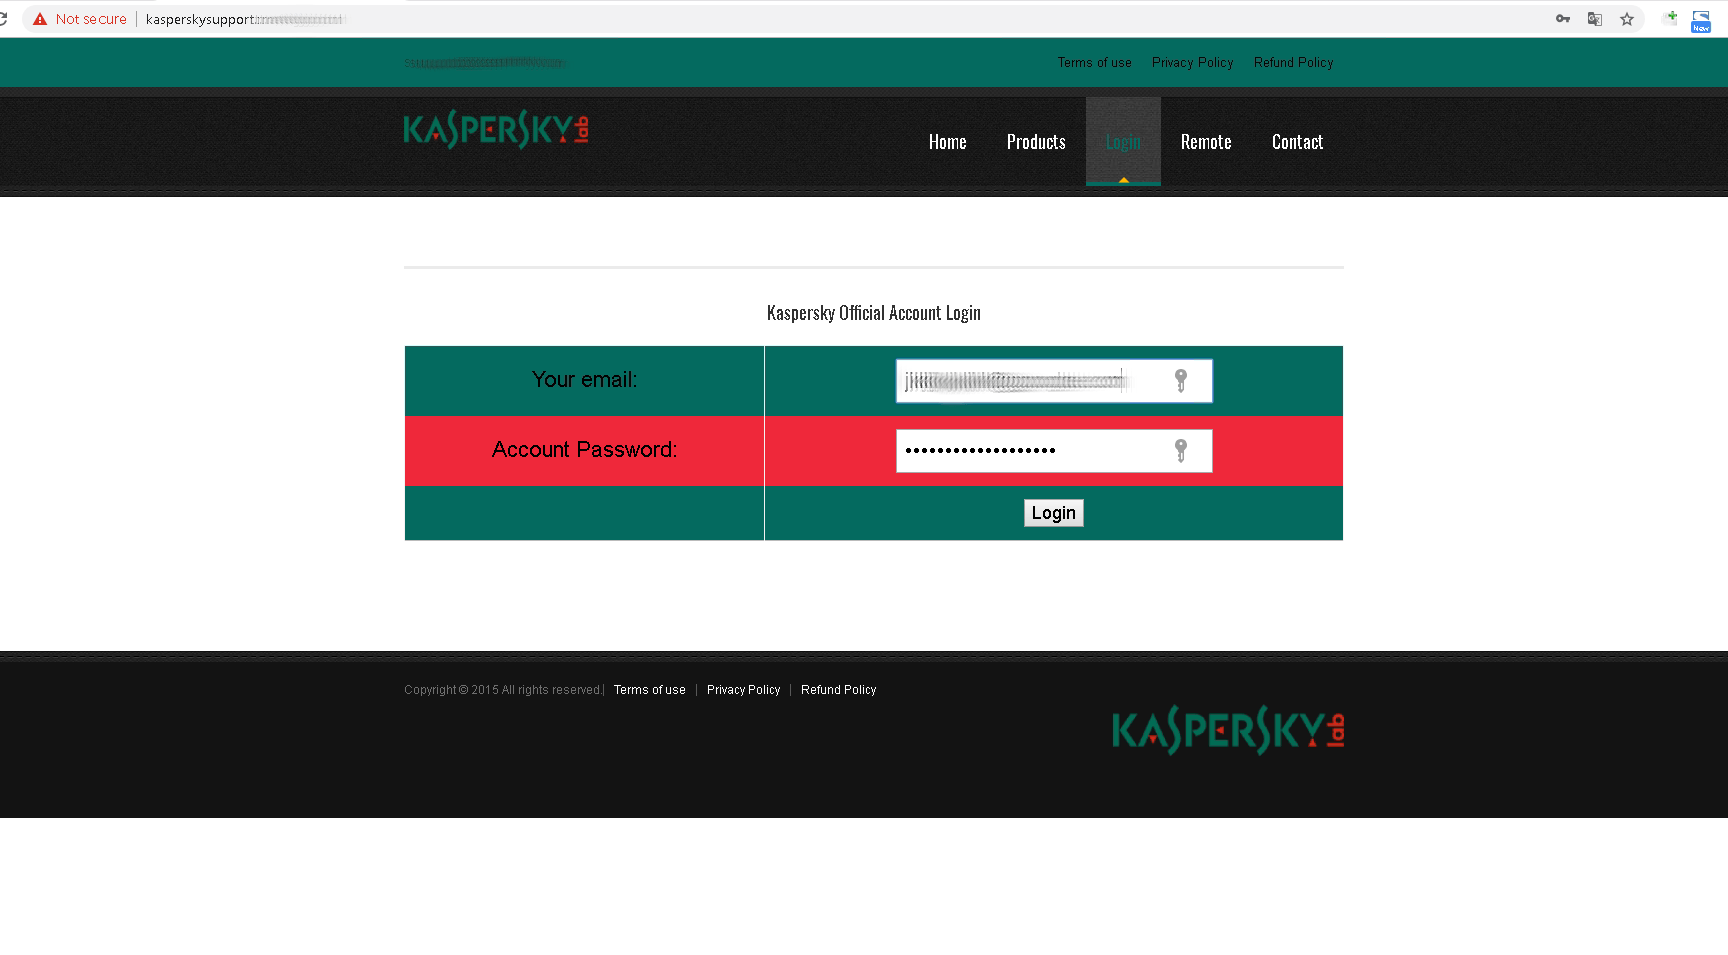 This fake Kaspersky Lab support website prompts for account information, supposedly to run a virus scan